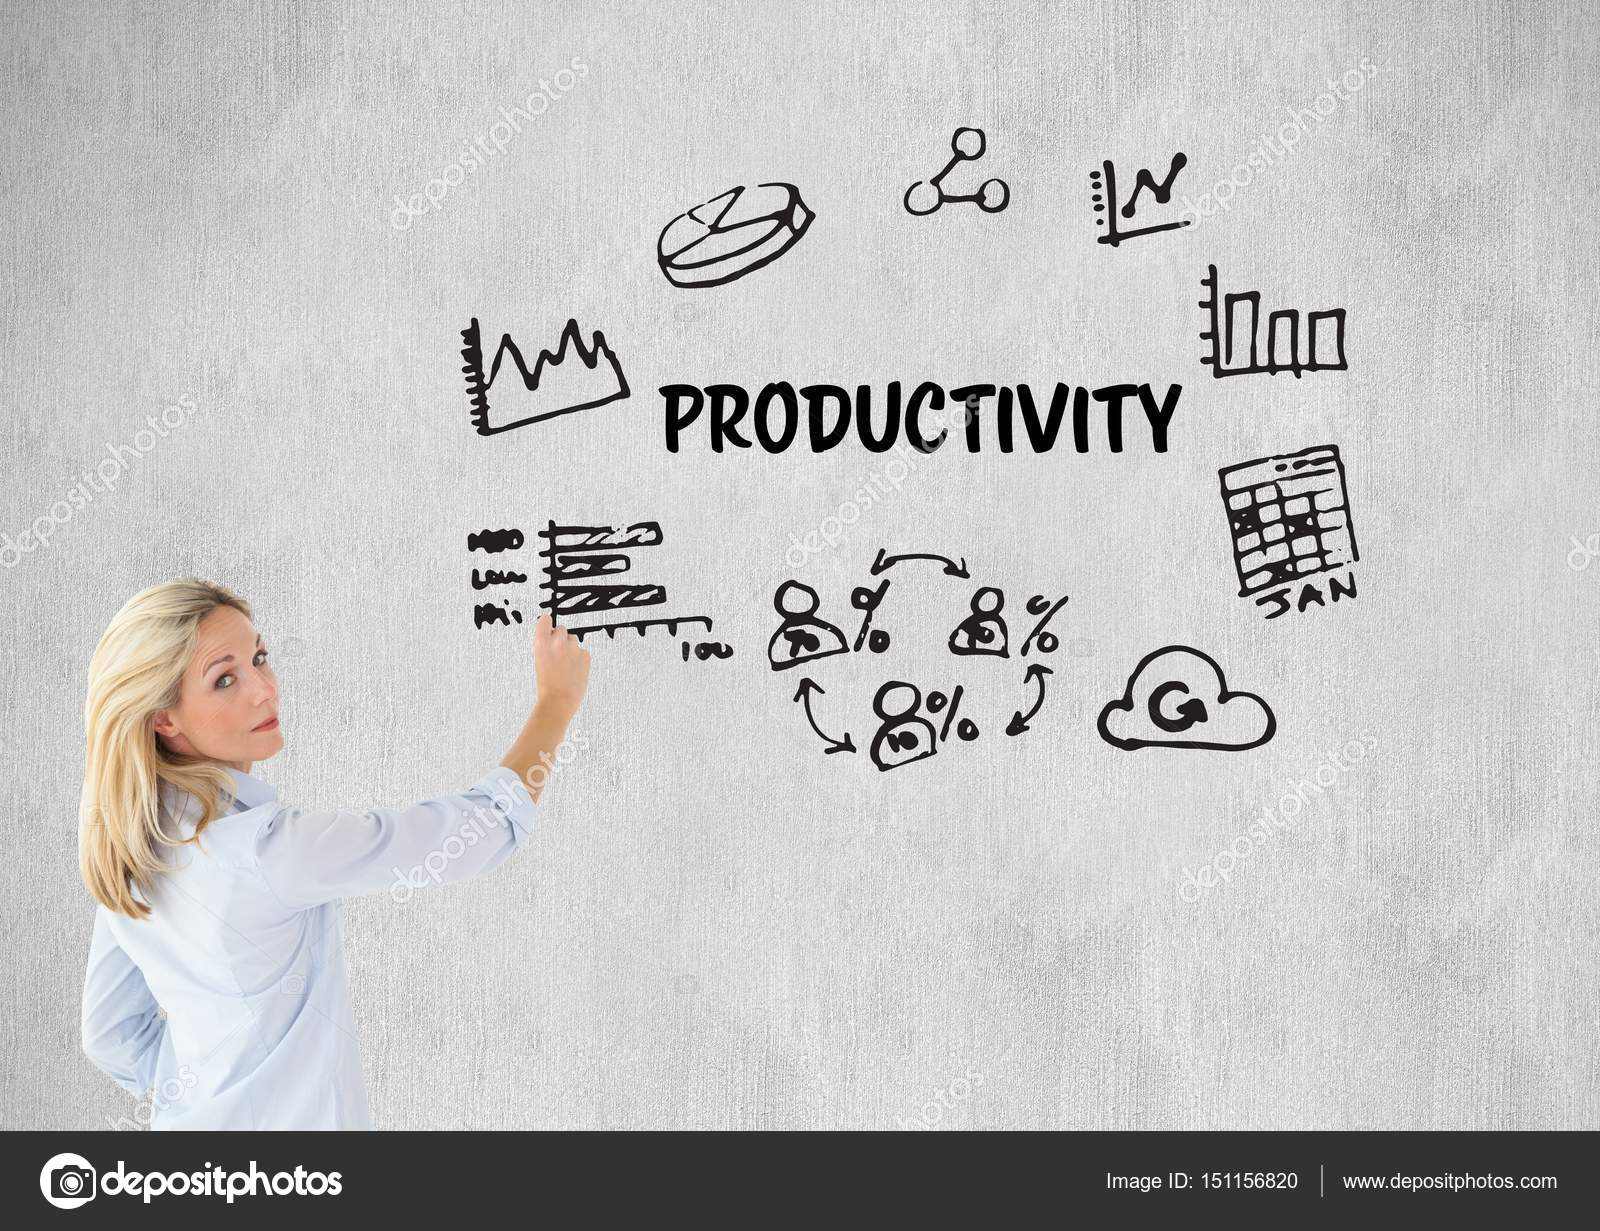 About Productivity woman drawing a graphic about productivity — stock photo